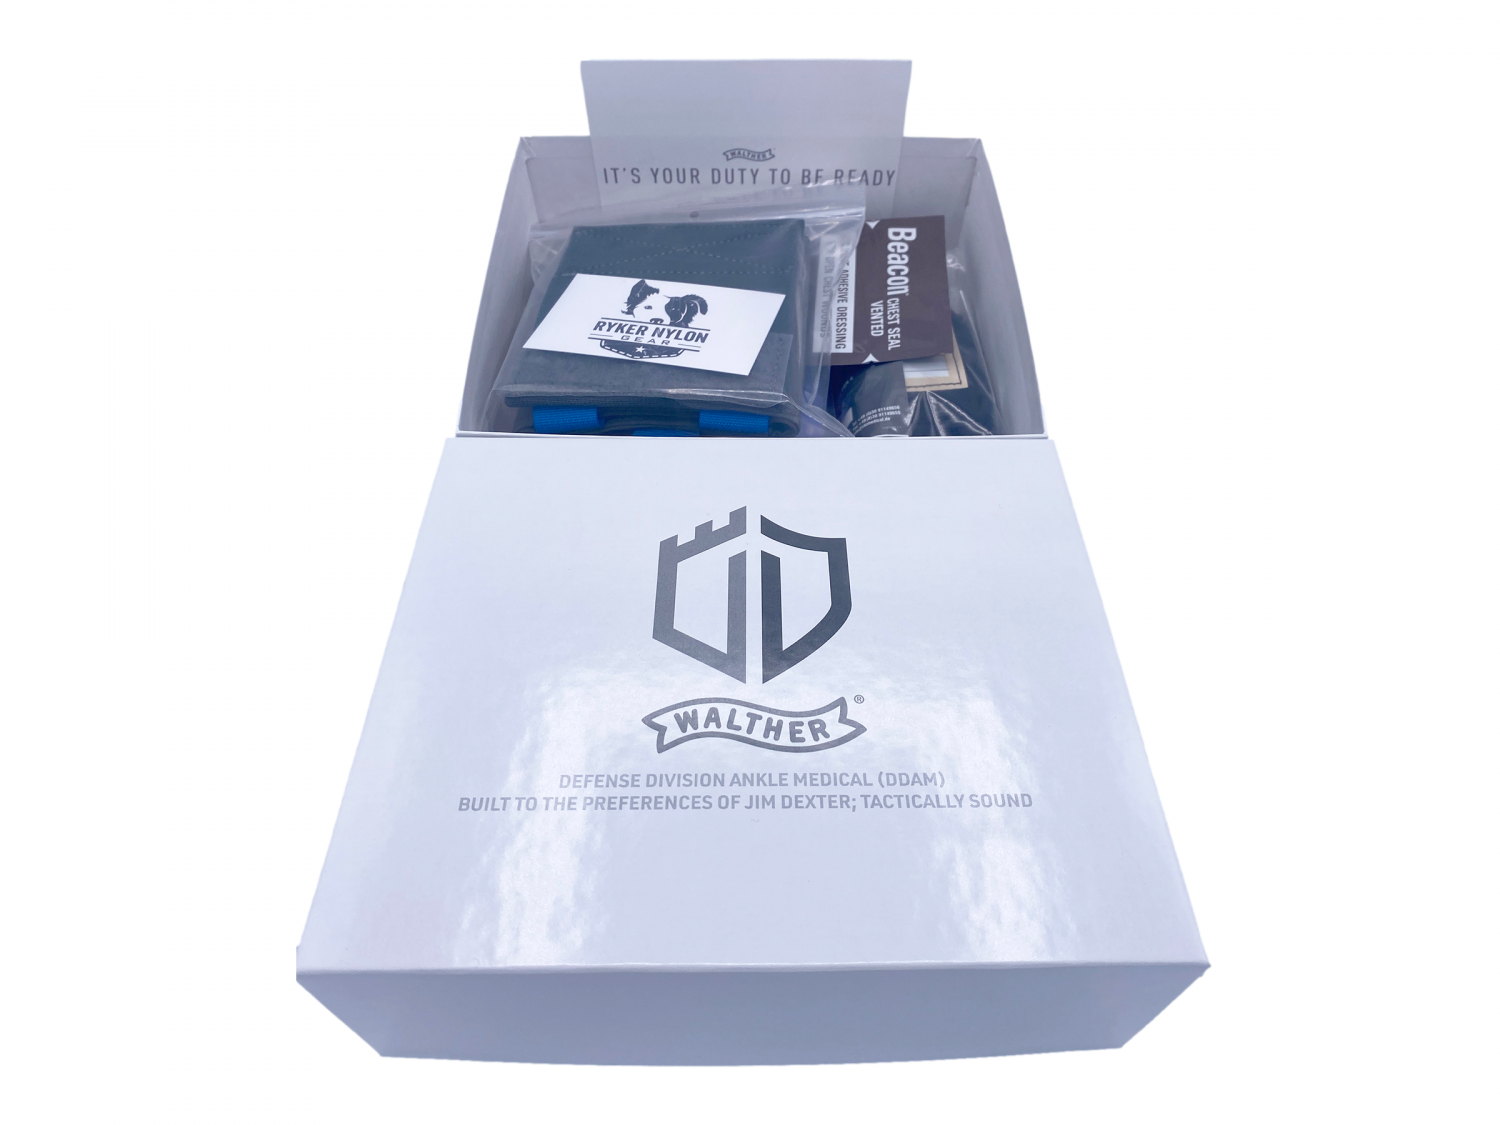 This ankle kit's package includes not only a well thought-out collection of medical gear, but also access to some introductory training videos on how to properly use it.